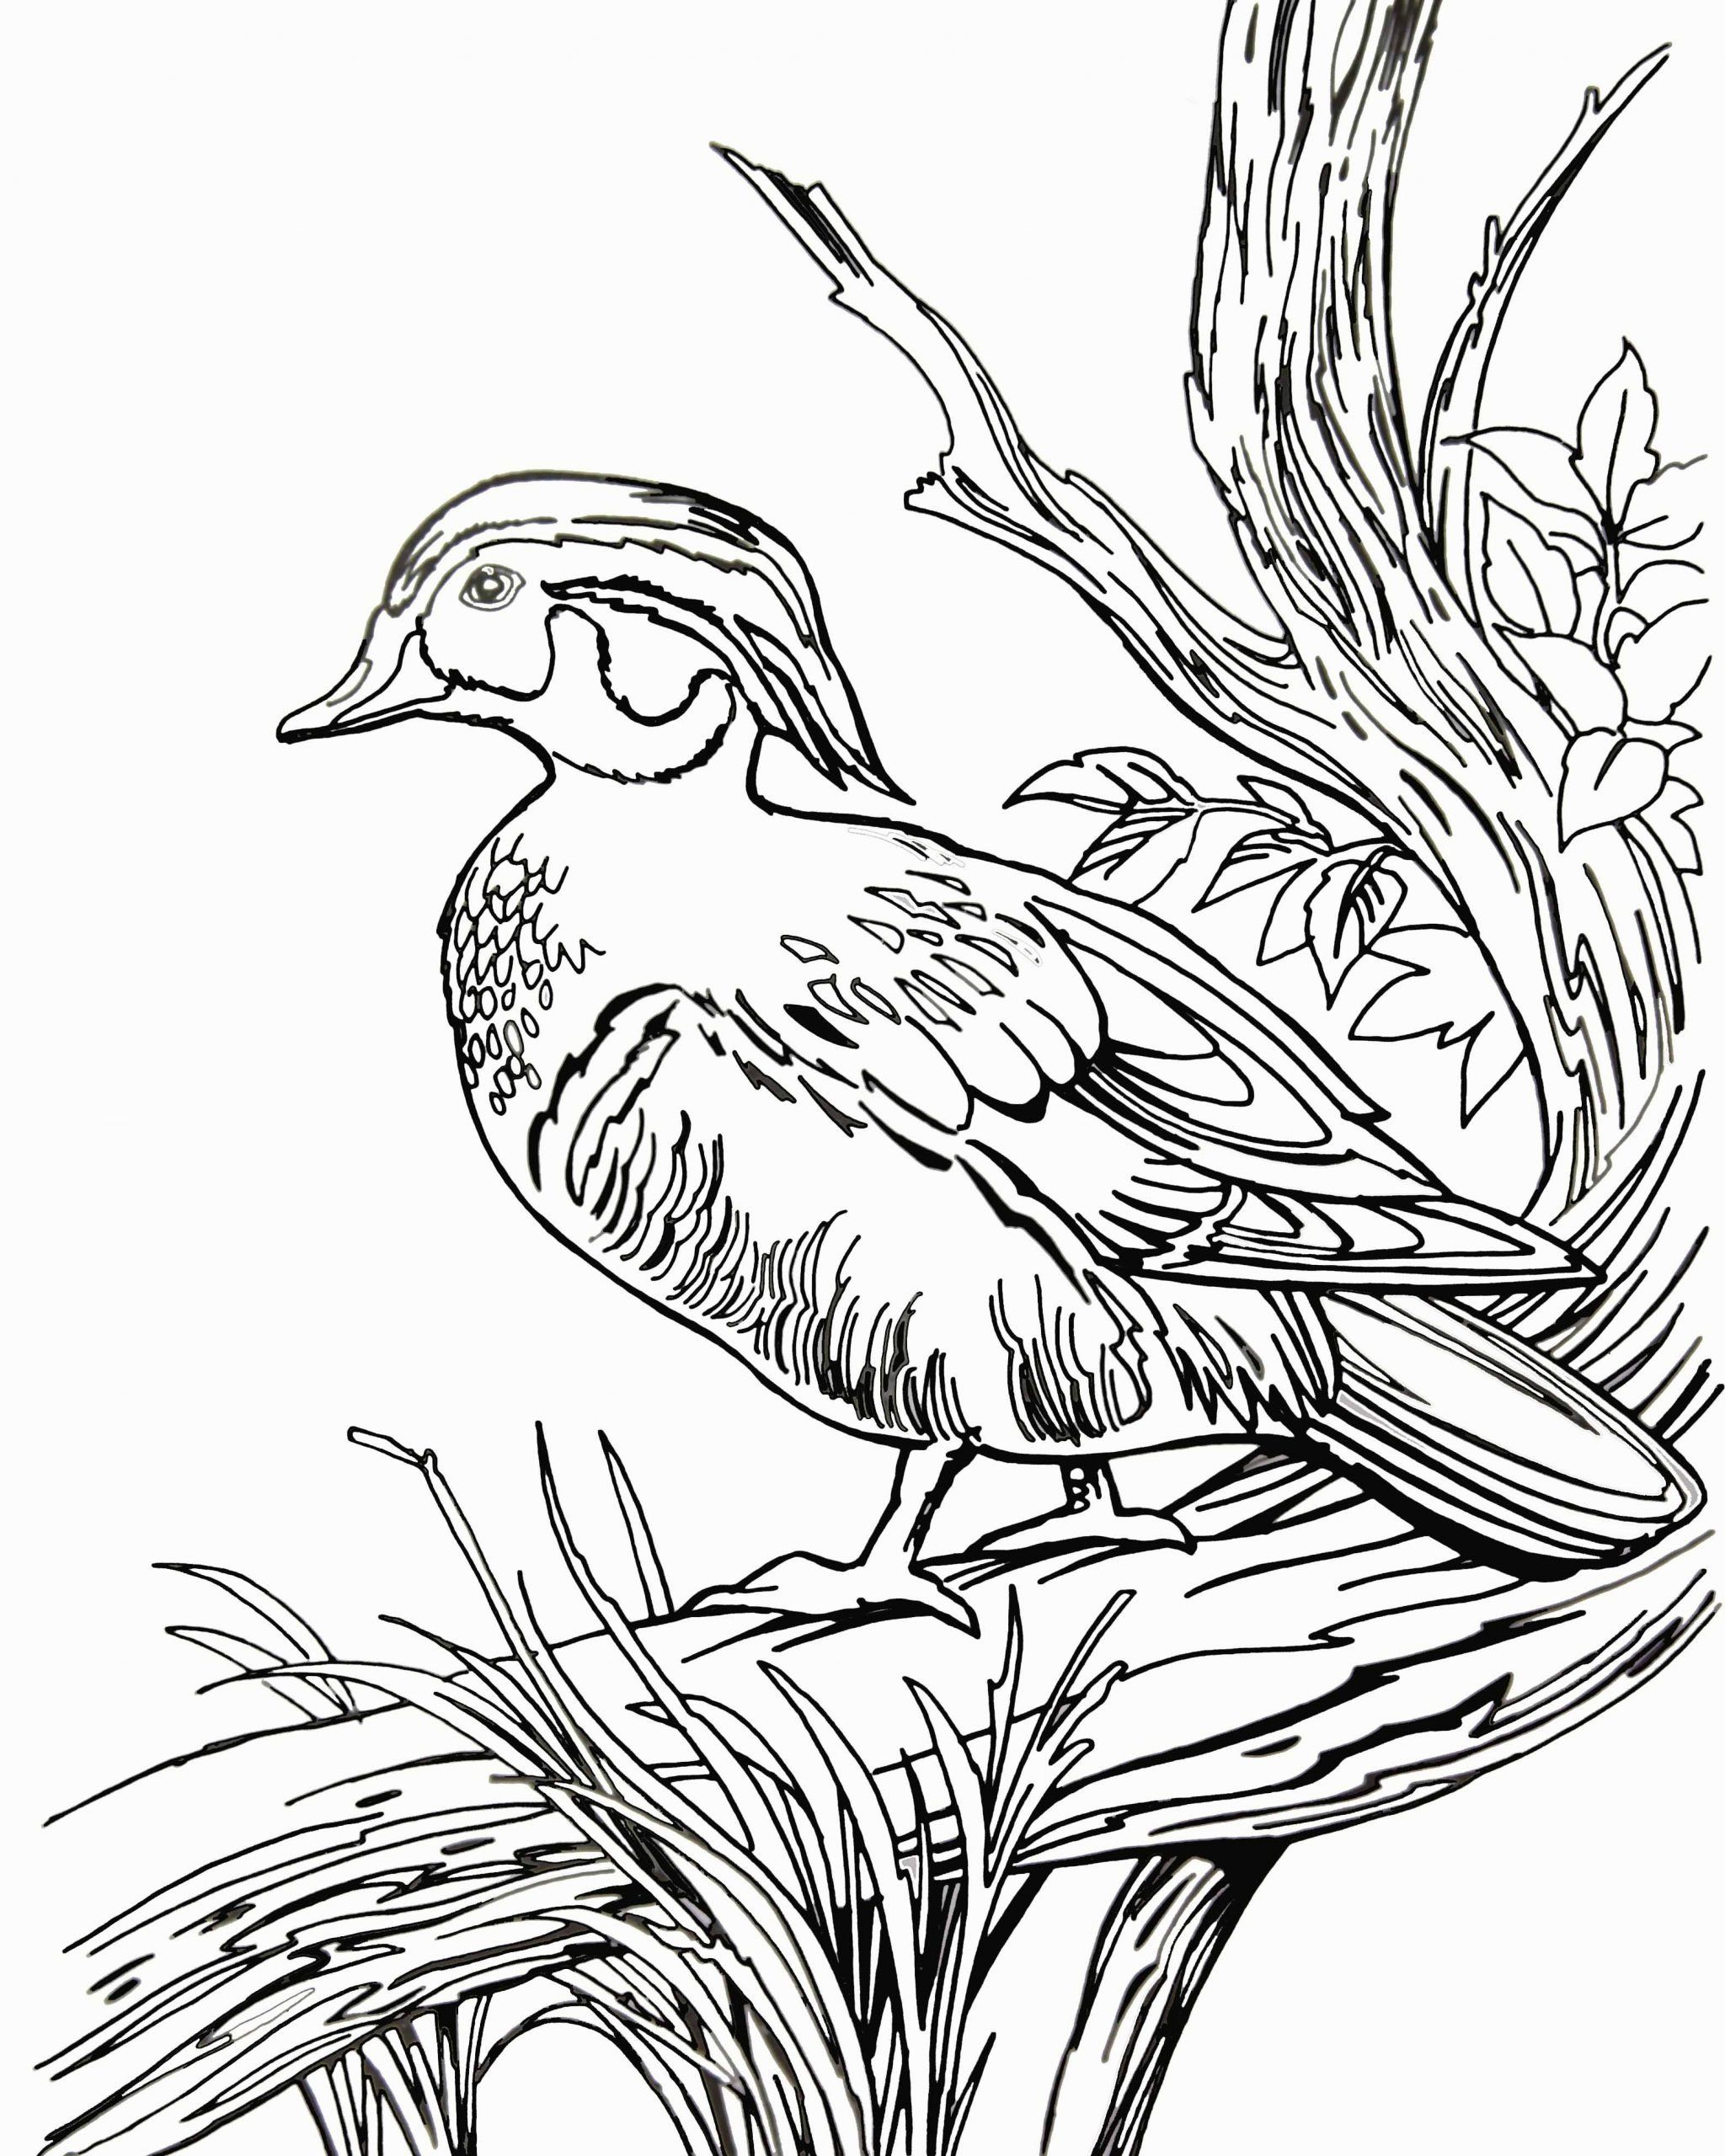 Flying Mallard Duck Coloring Page Supercoloring Com Coloring Pages Bird Coloring Pages Duck Drawing